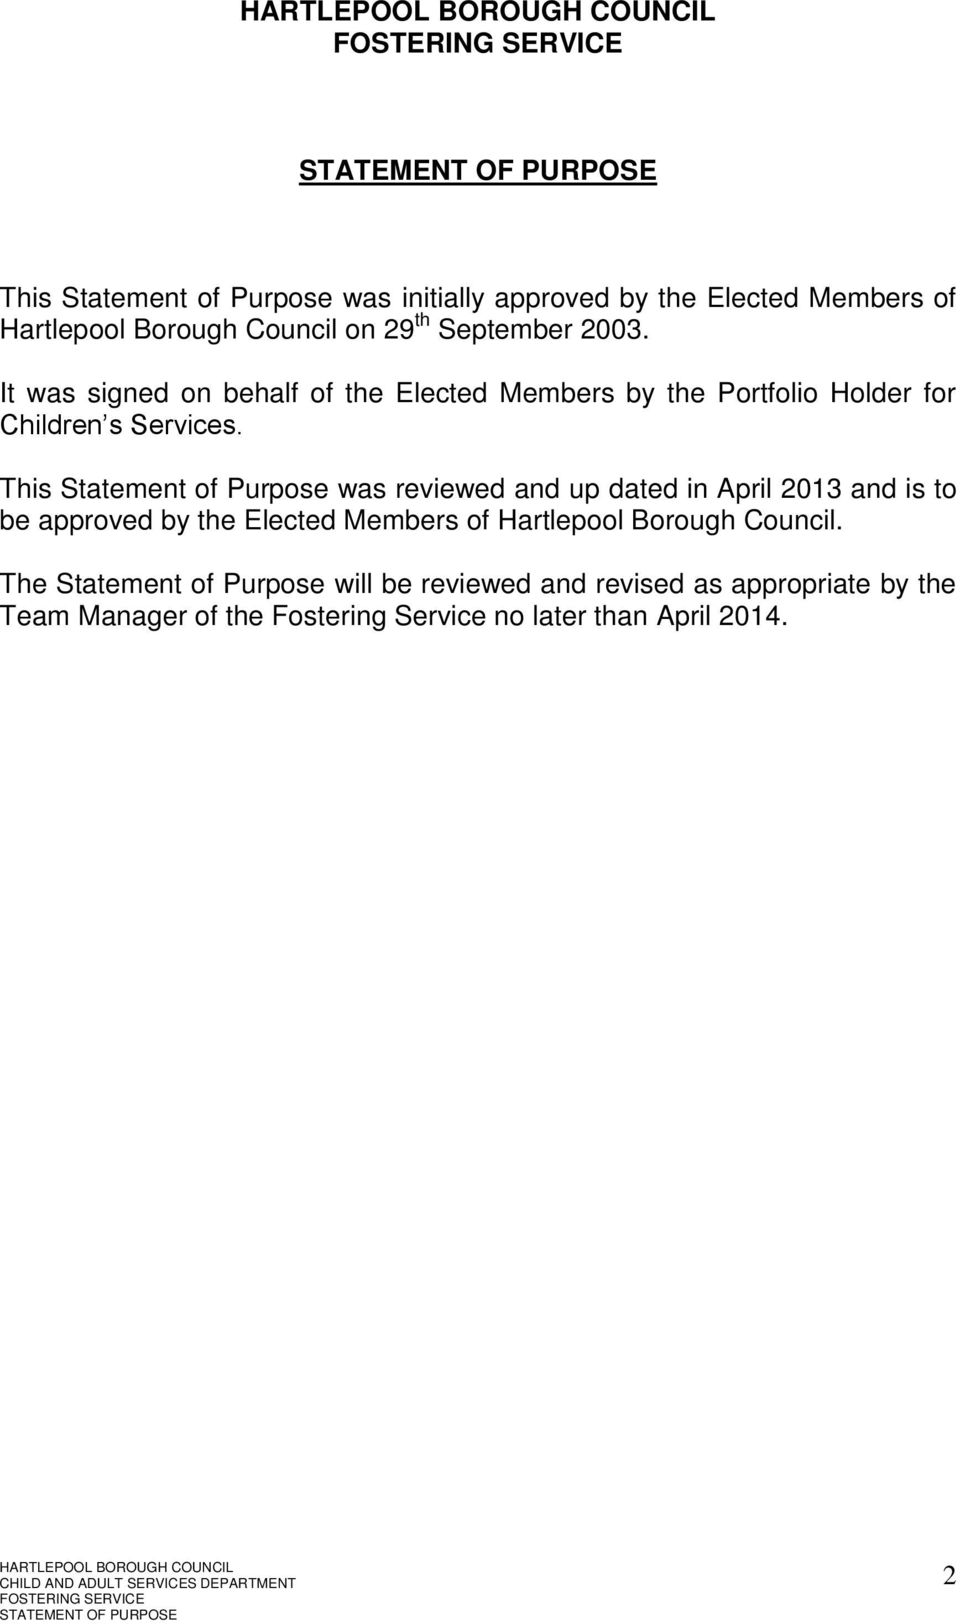 This Statement of Purpose was reviewed and up dated in April 013 and is to be approved by the Elected Members of Hartlepool